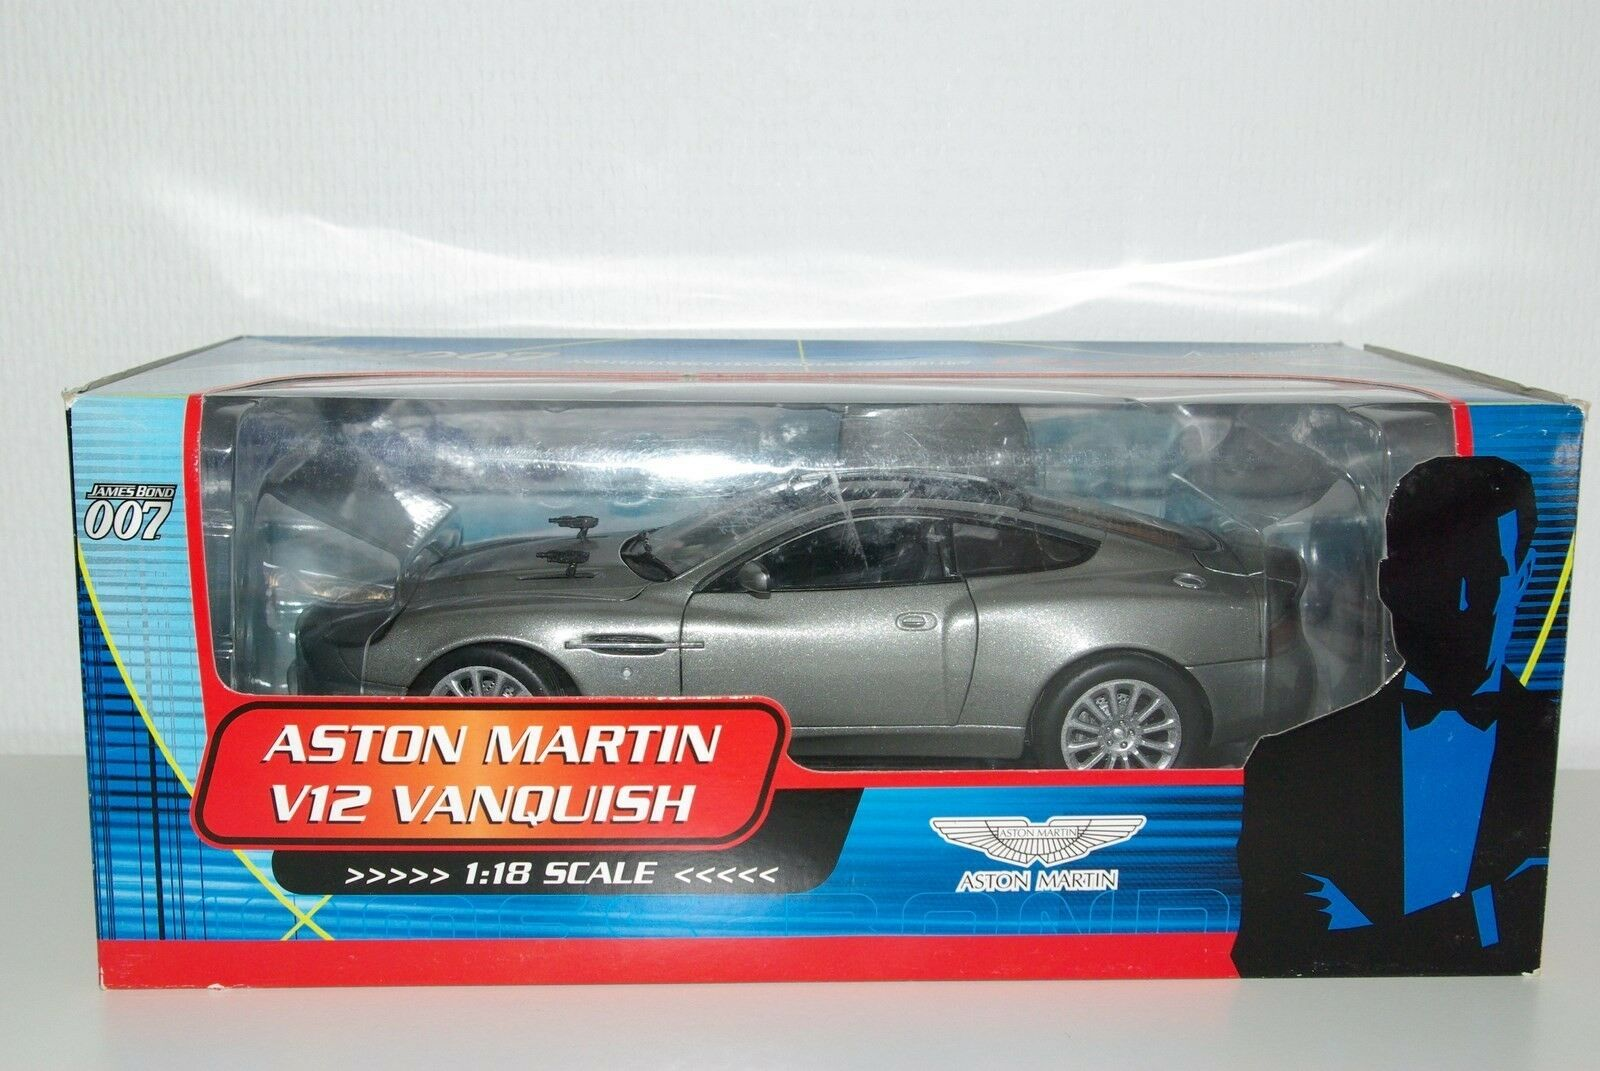 PAUL MODEL ART JAMES BOND ASTON MARTIN V12 VANQUISH MINT BOXED RARE SELTEN RARO